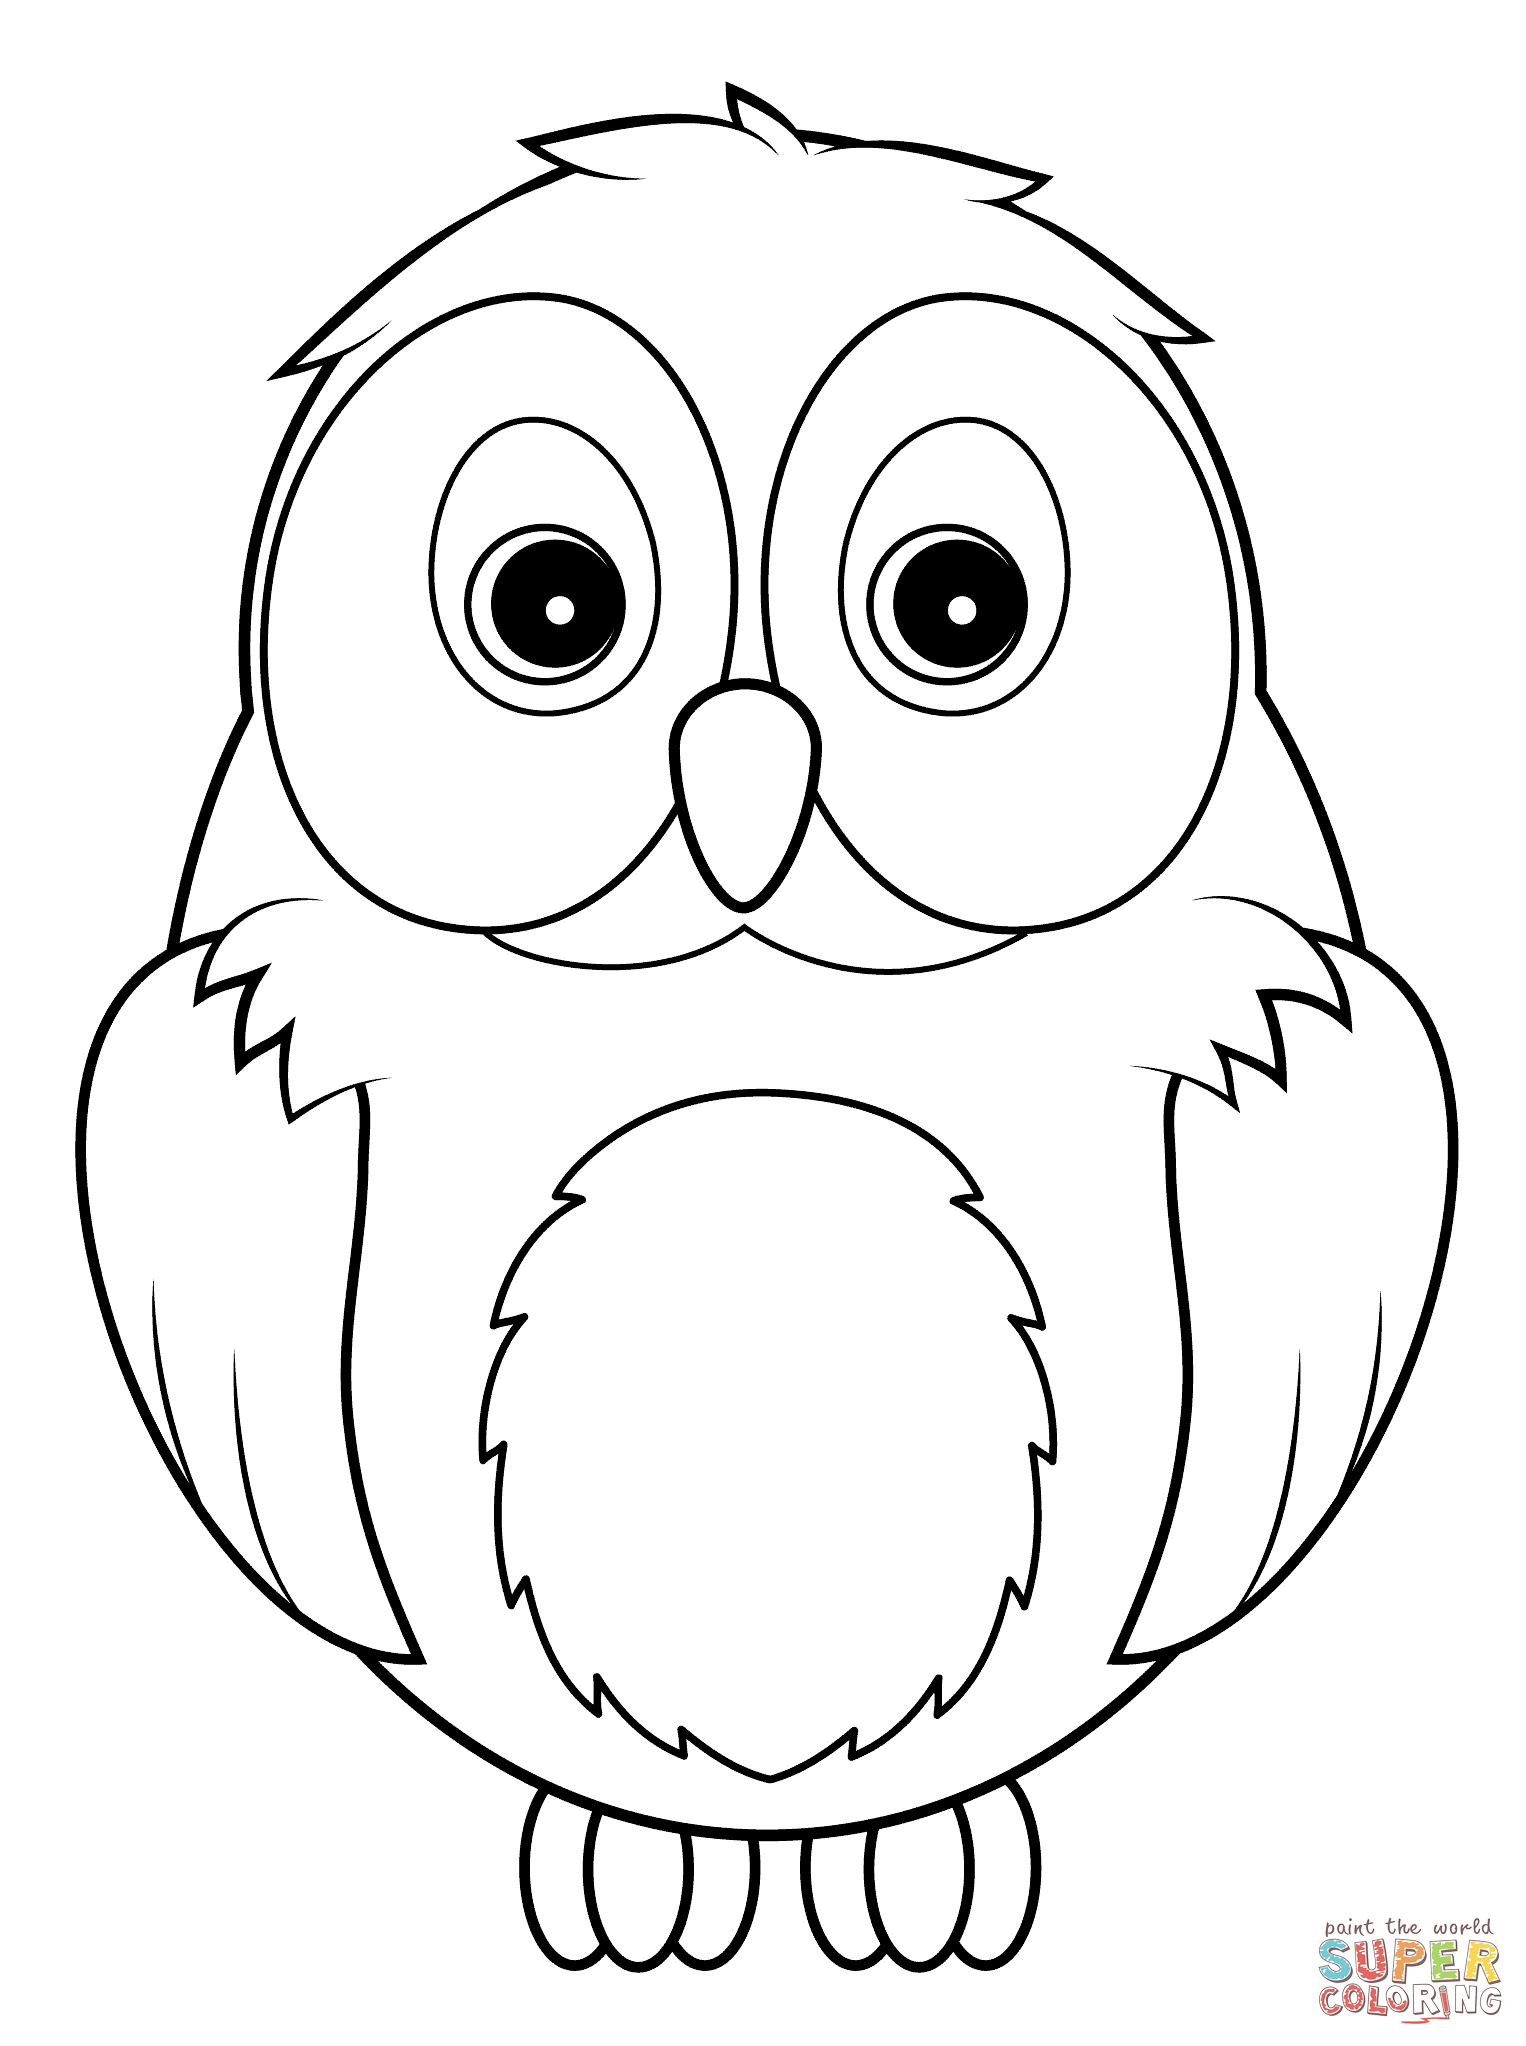 images of owls to color owl coloring page free owl coloring pages to color of owls images